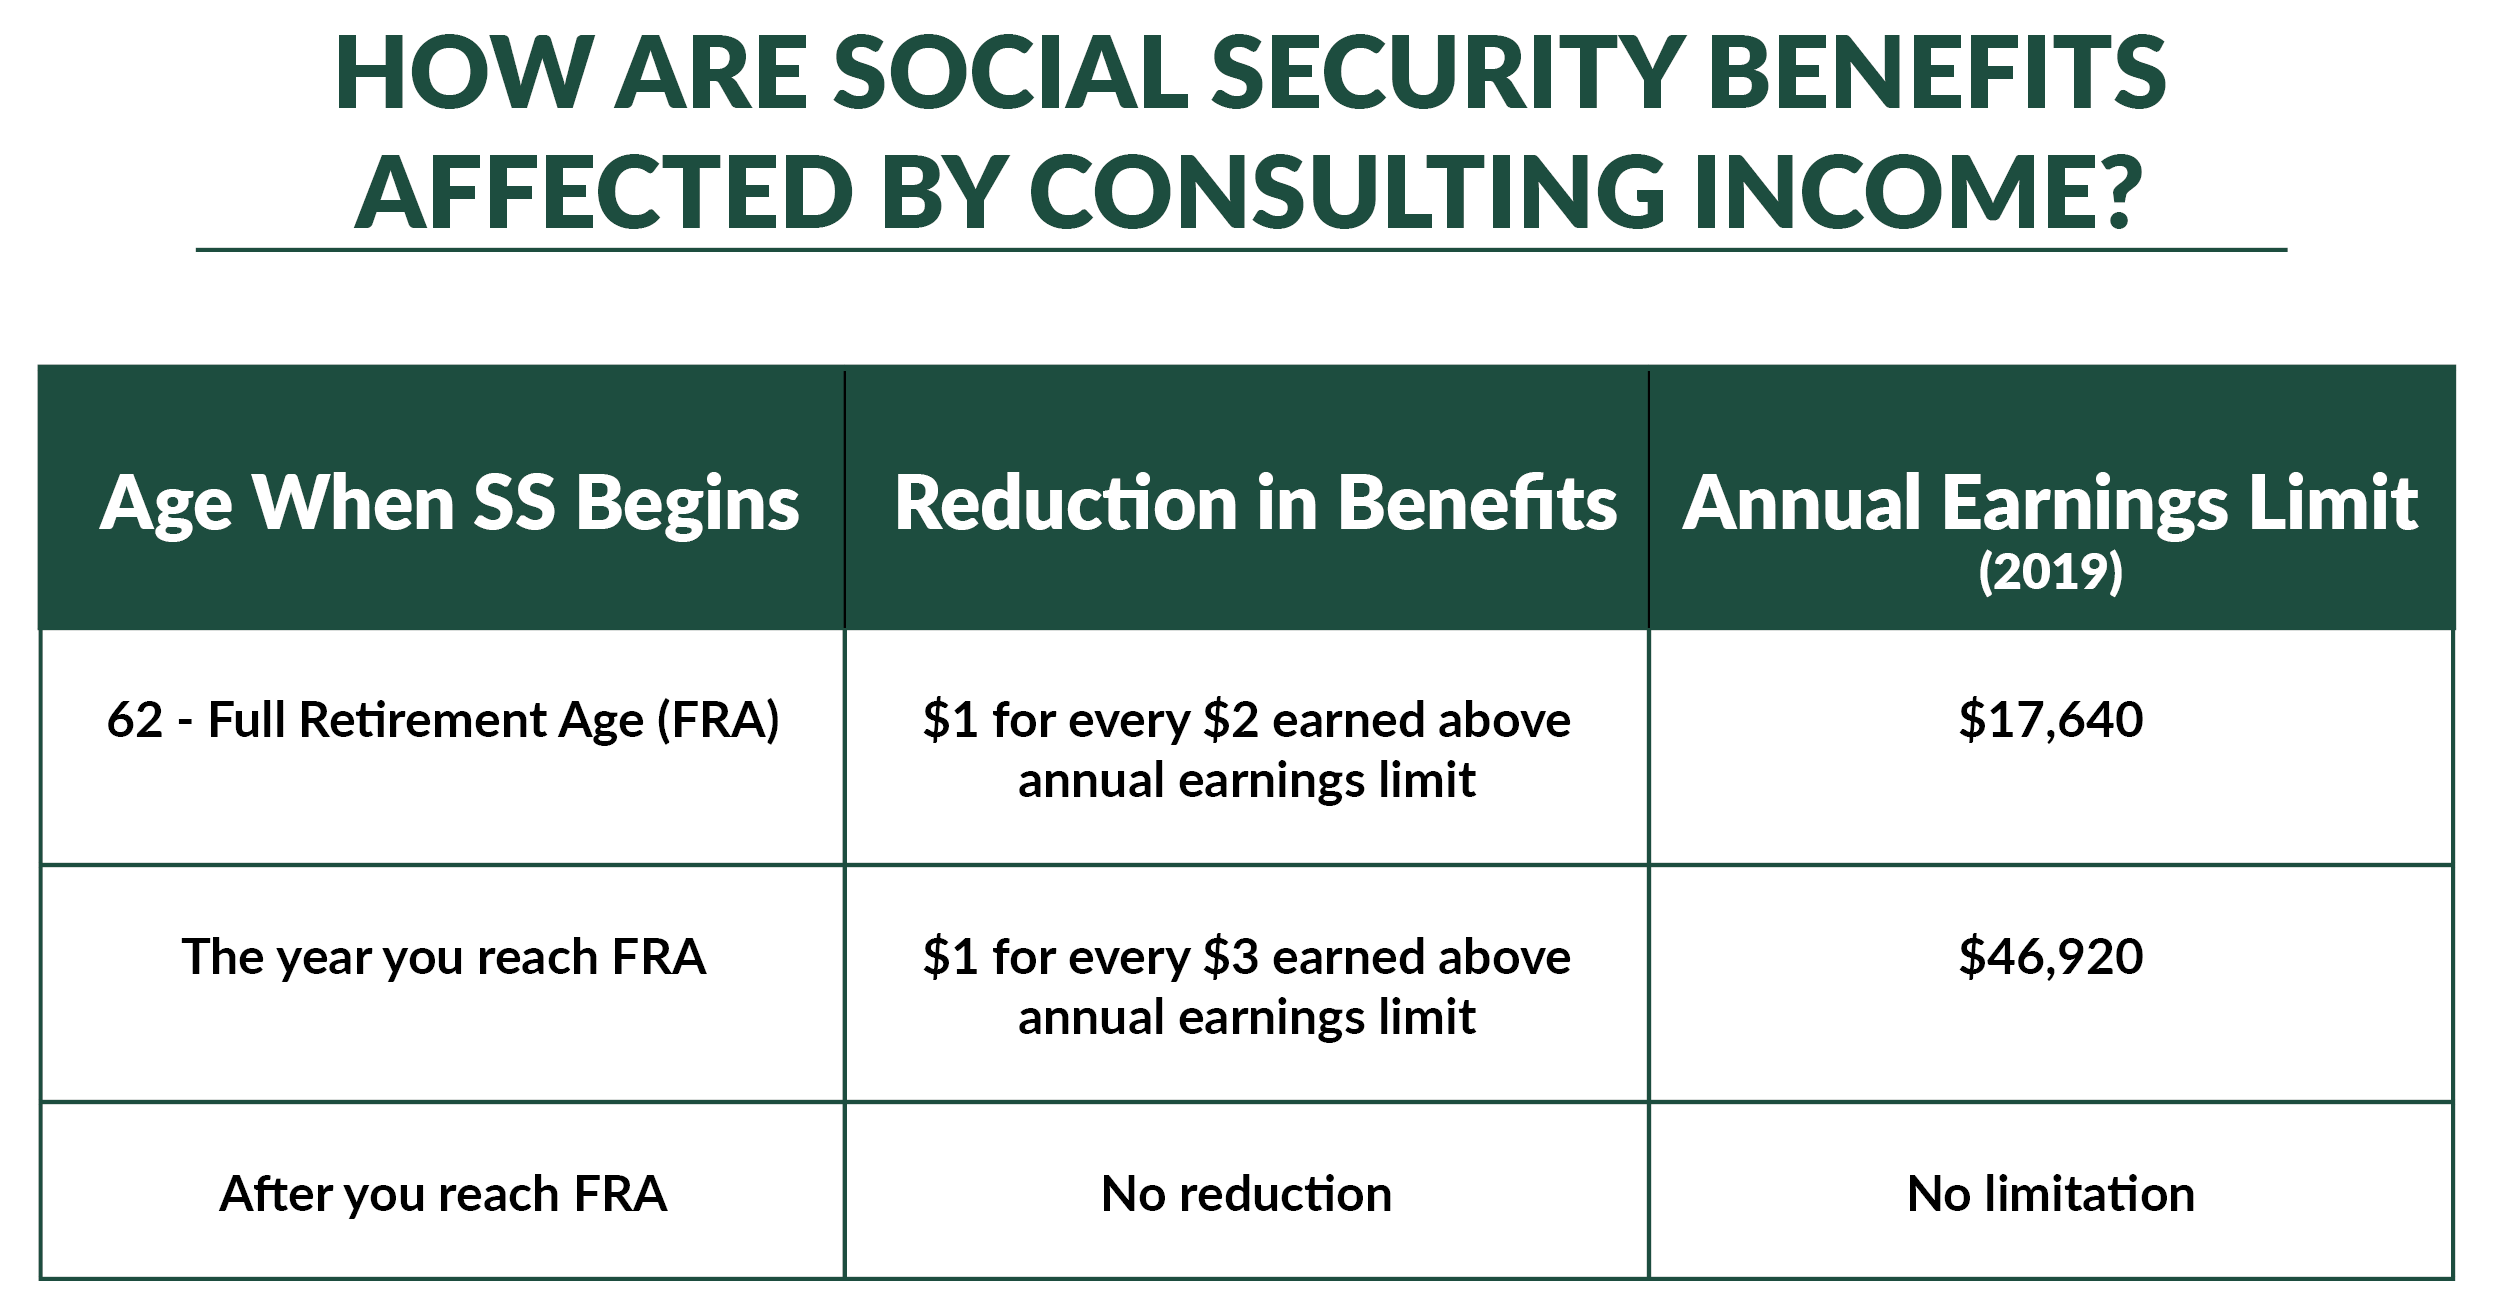 social security benefits while consulting